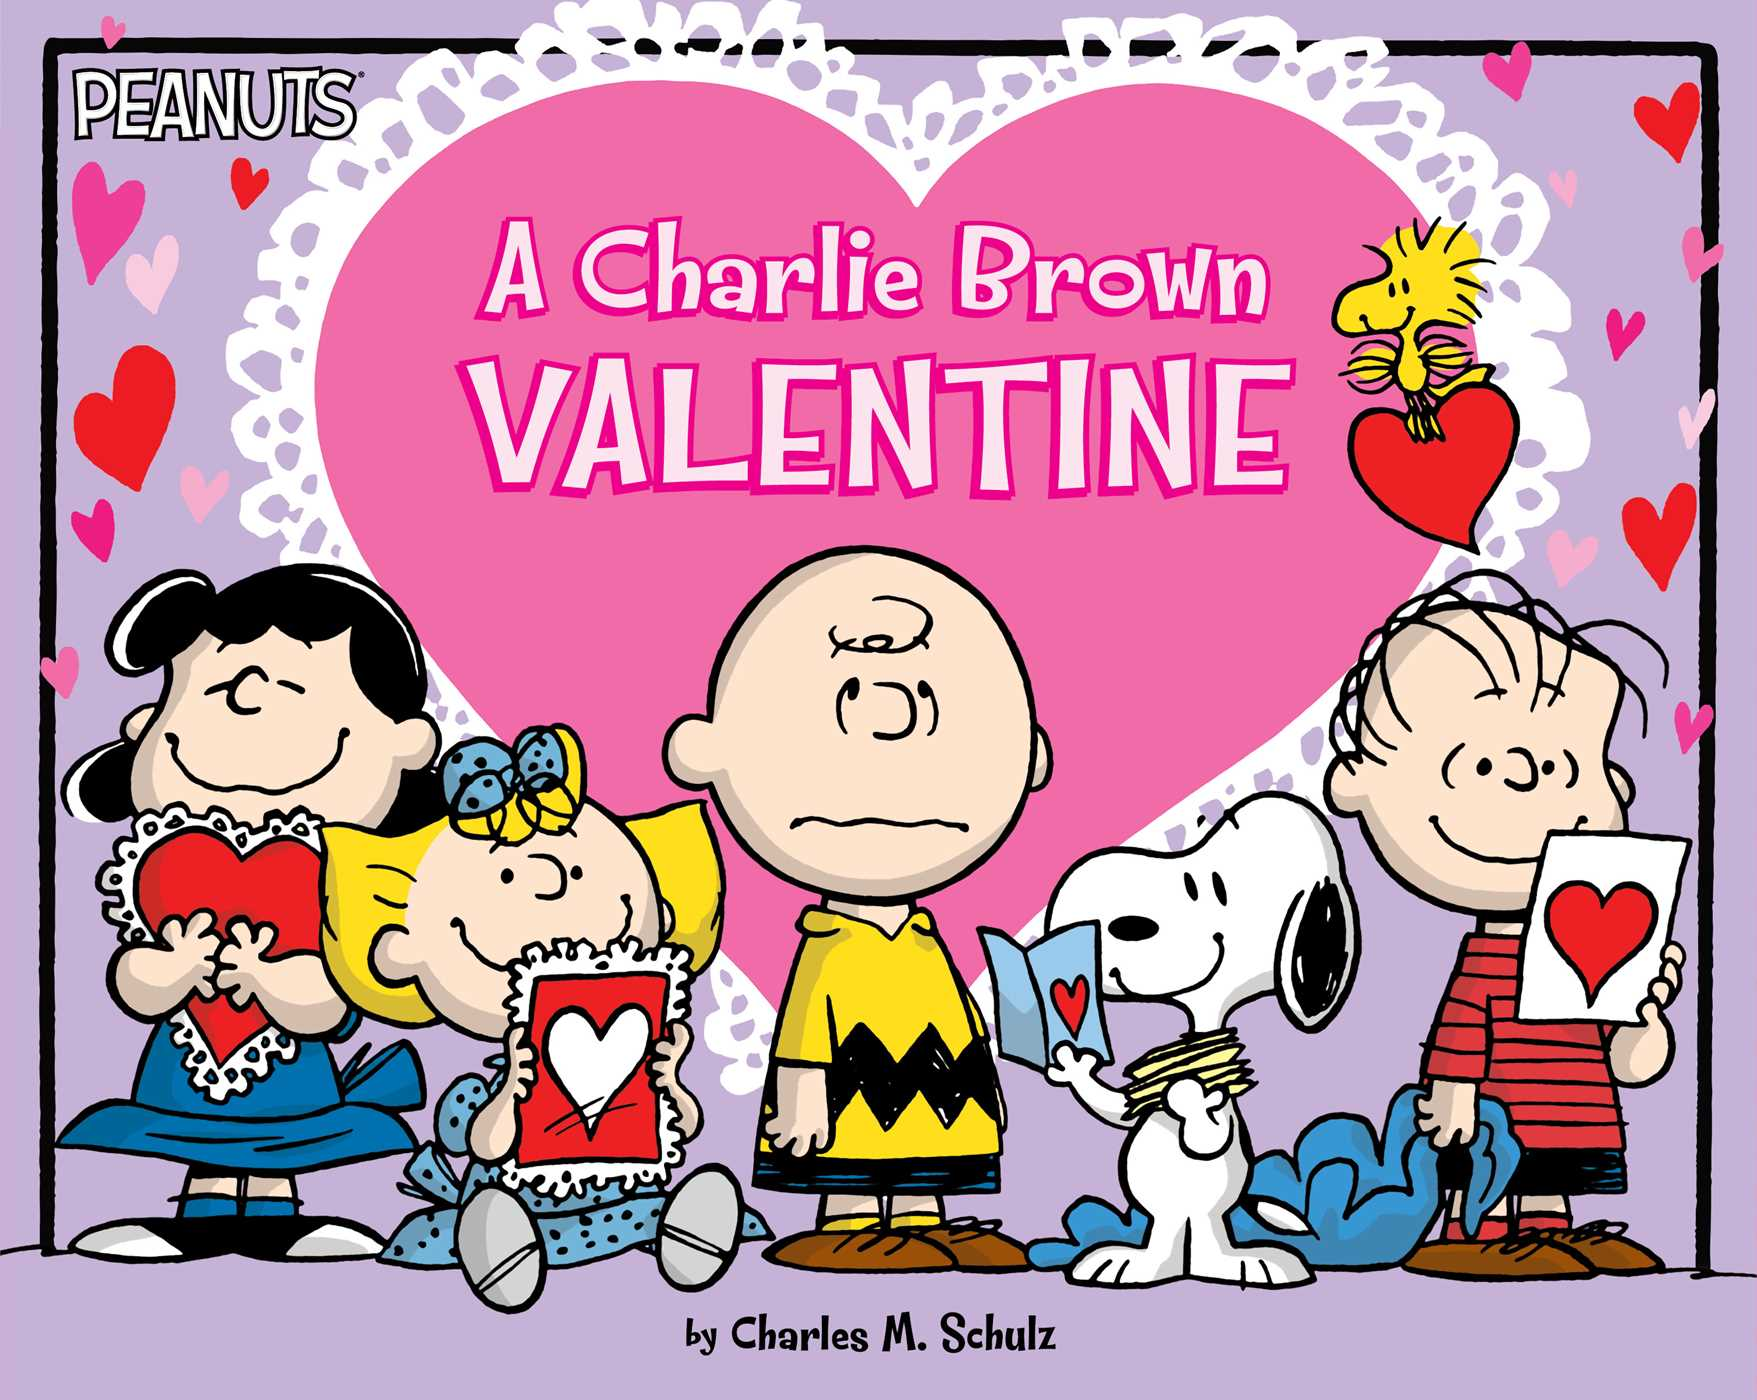 a charlie brown valentine 9781481468039 hr - Charlie Brown Valentine Video